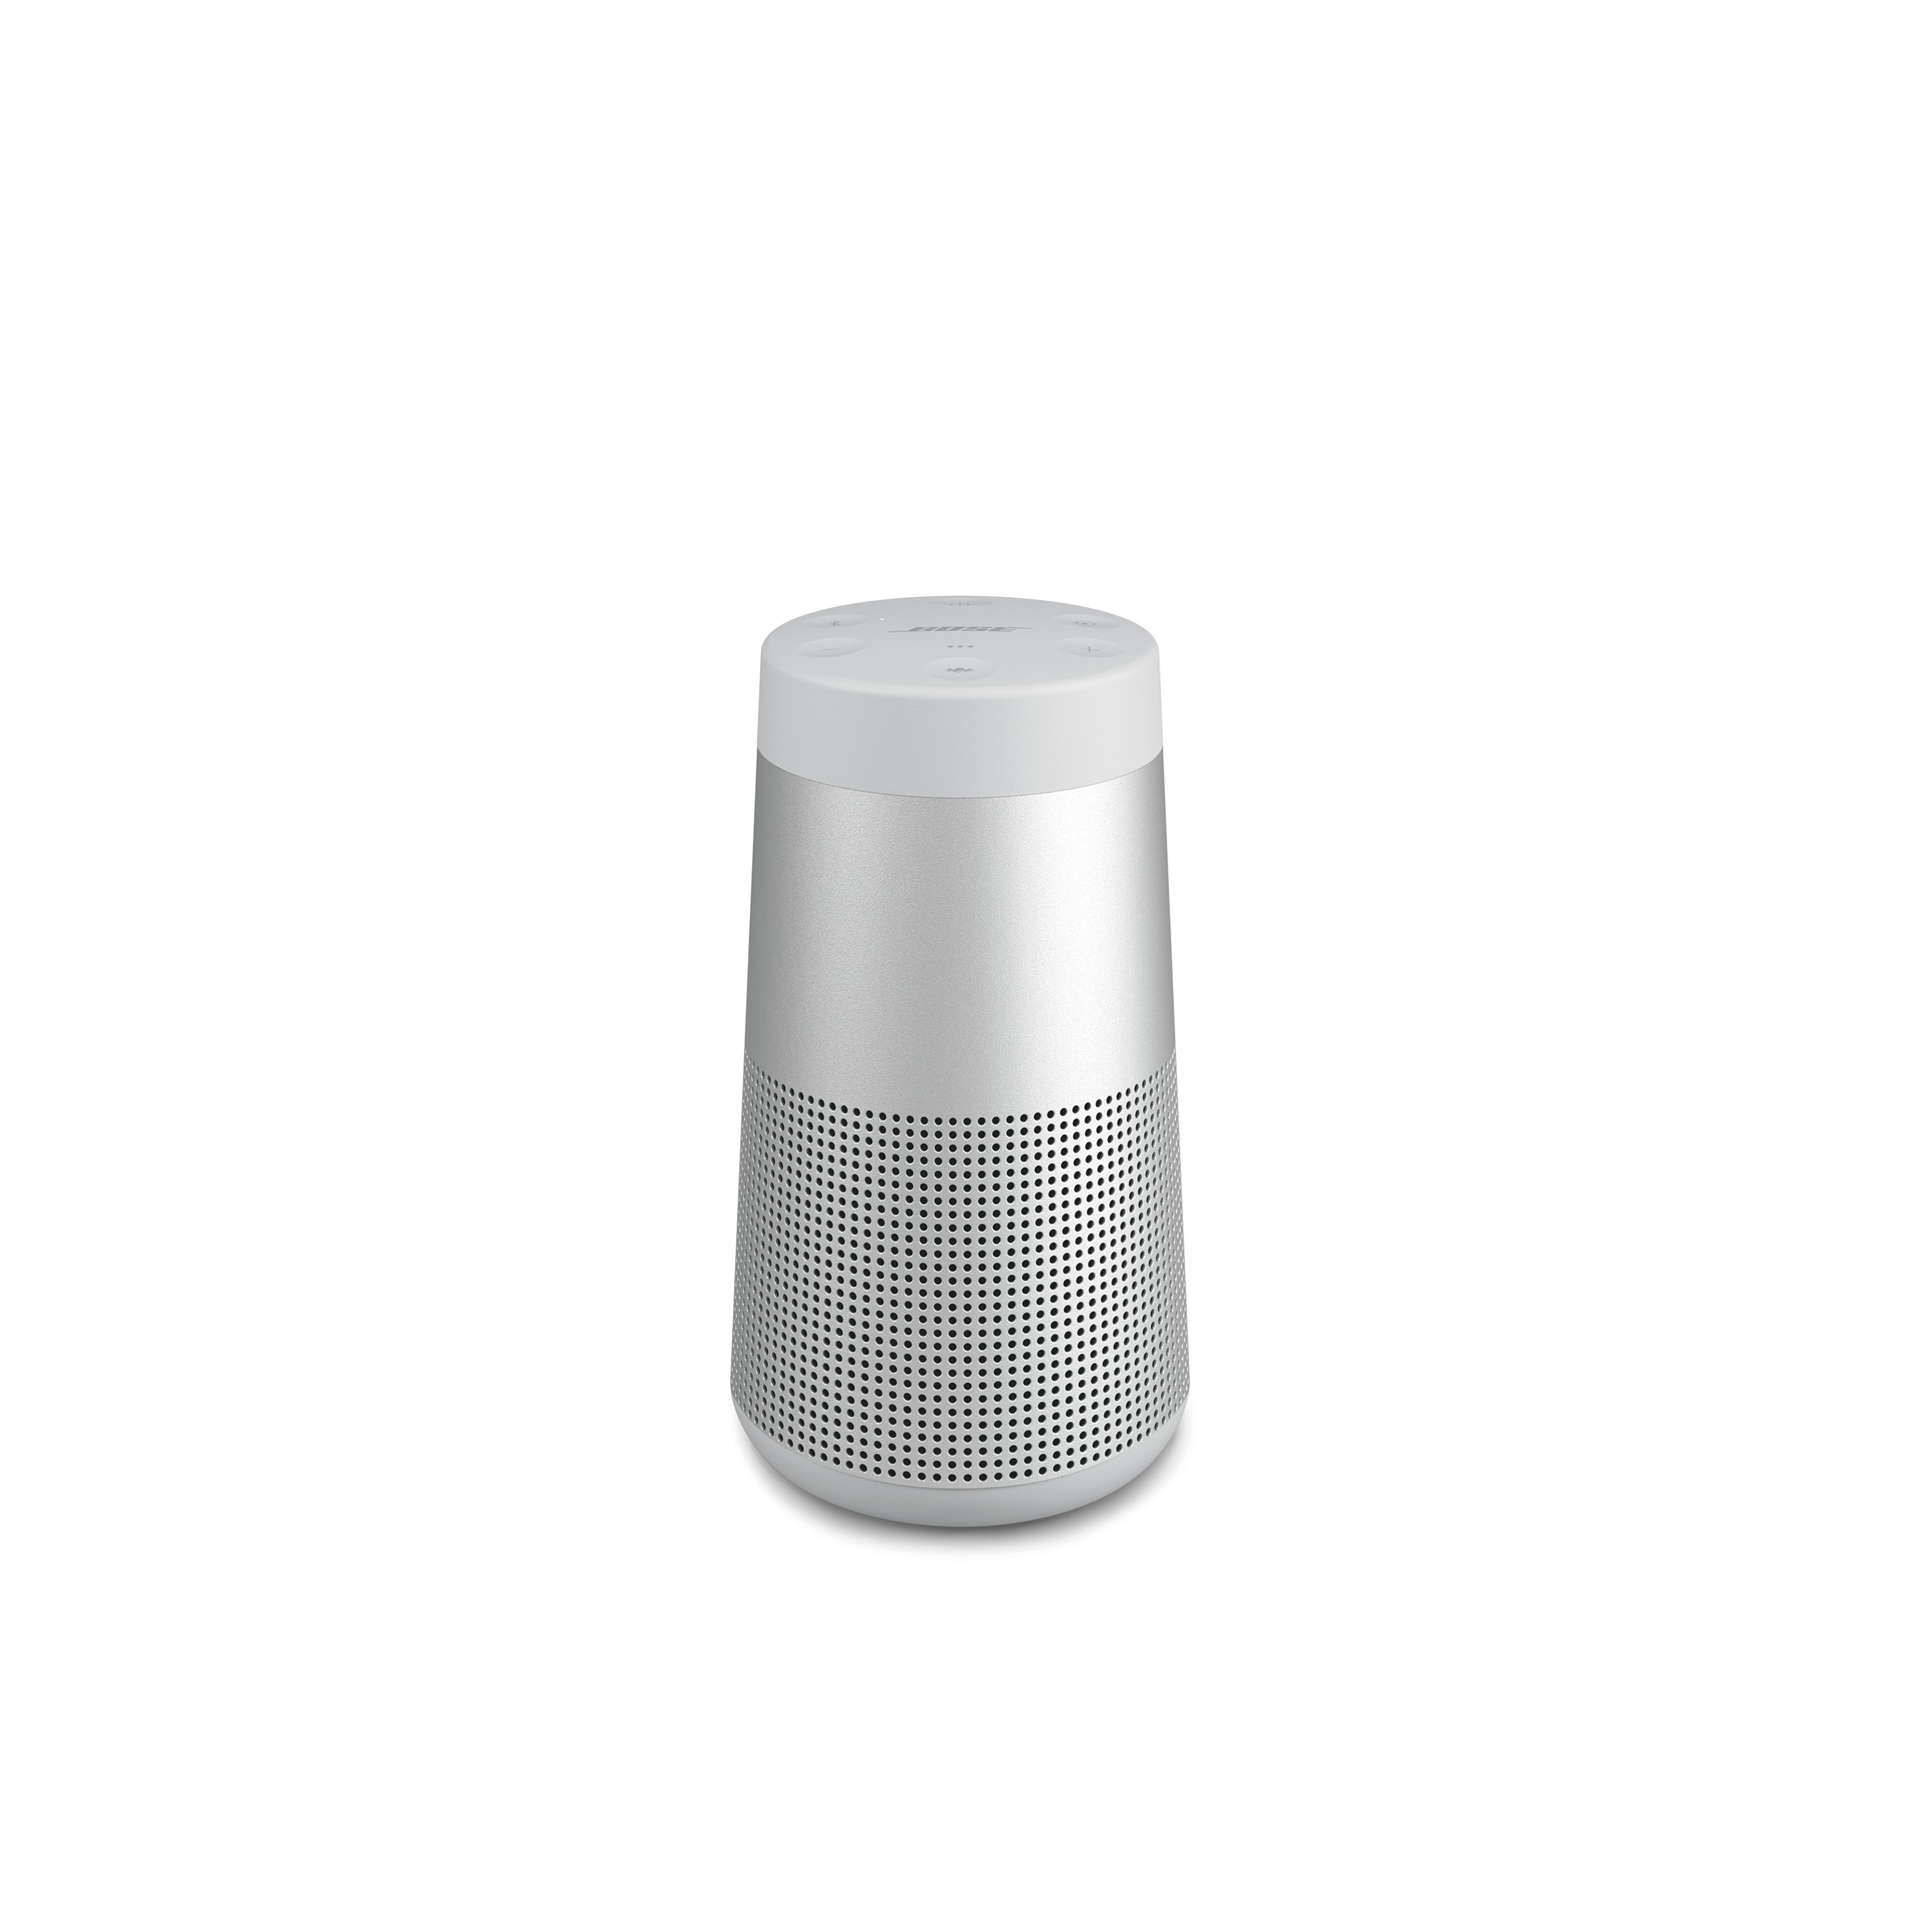 bose enceinte bluetooth soundlink revolve blanc centre d 39 achats en ligne ouvrez votre. Black Bedroom Furniture Sets. Home Design Ideas